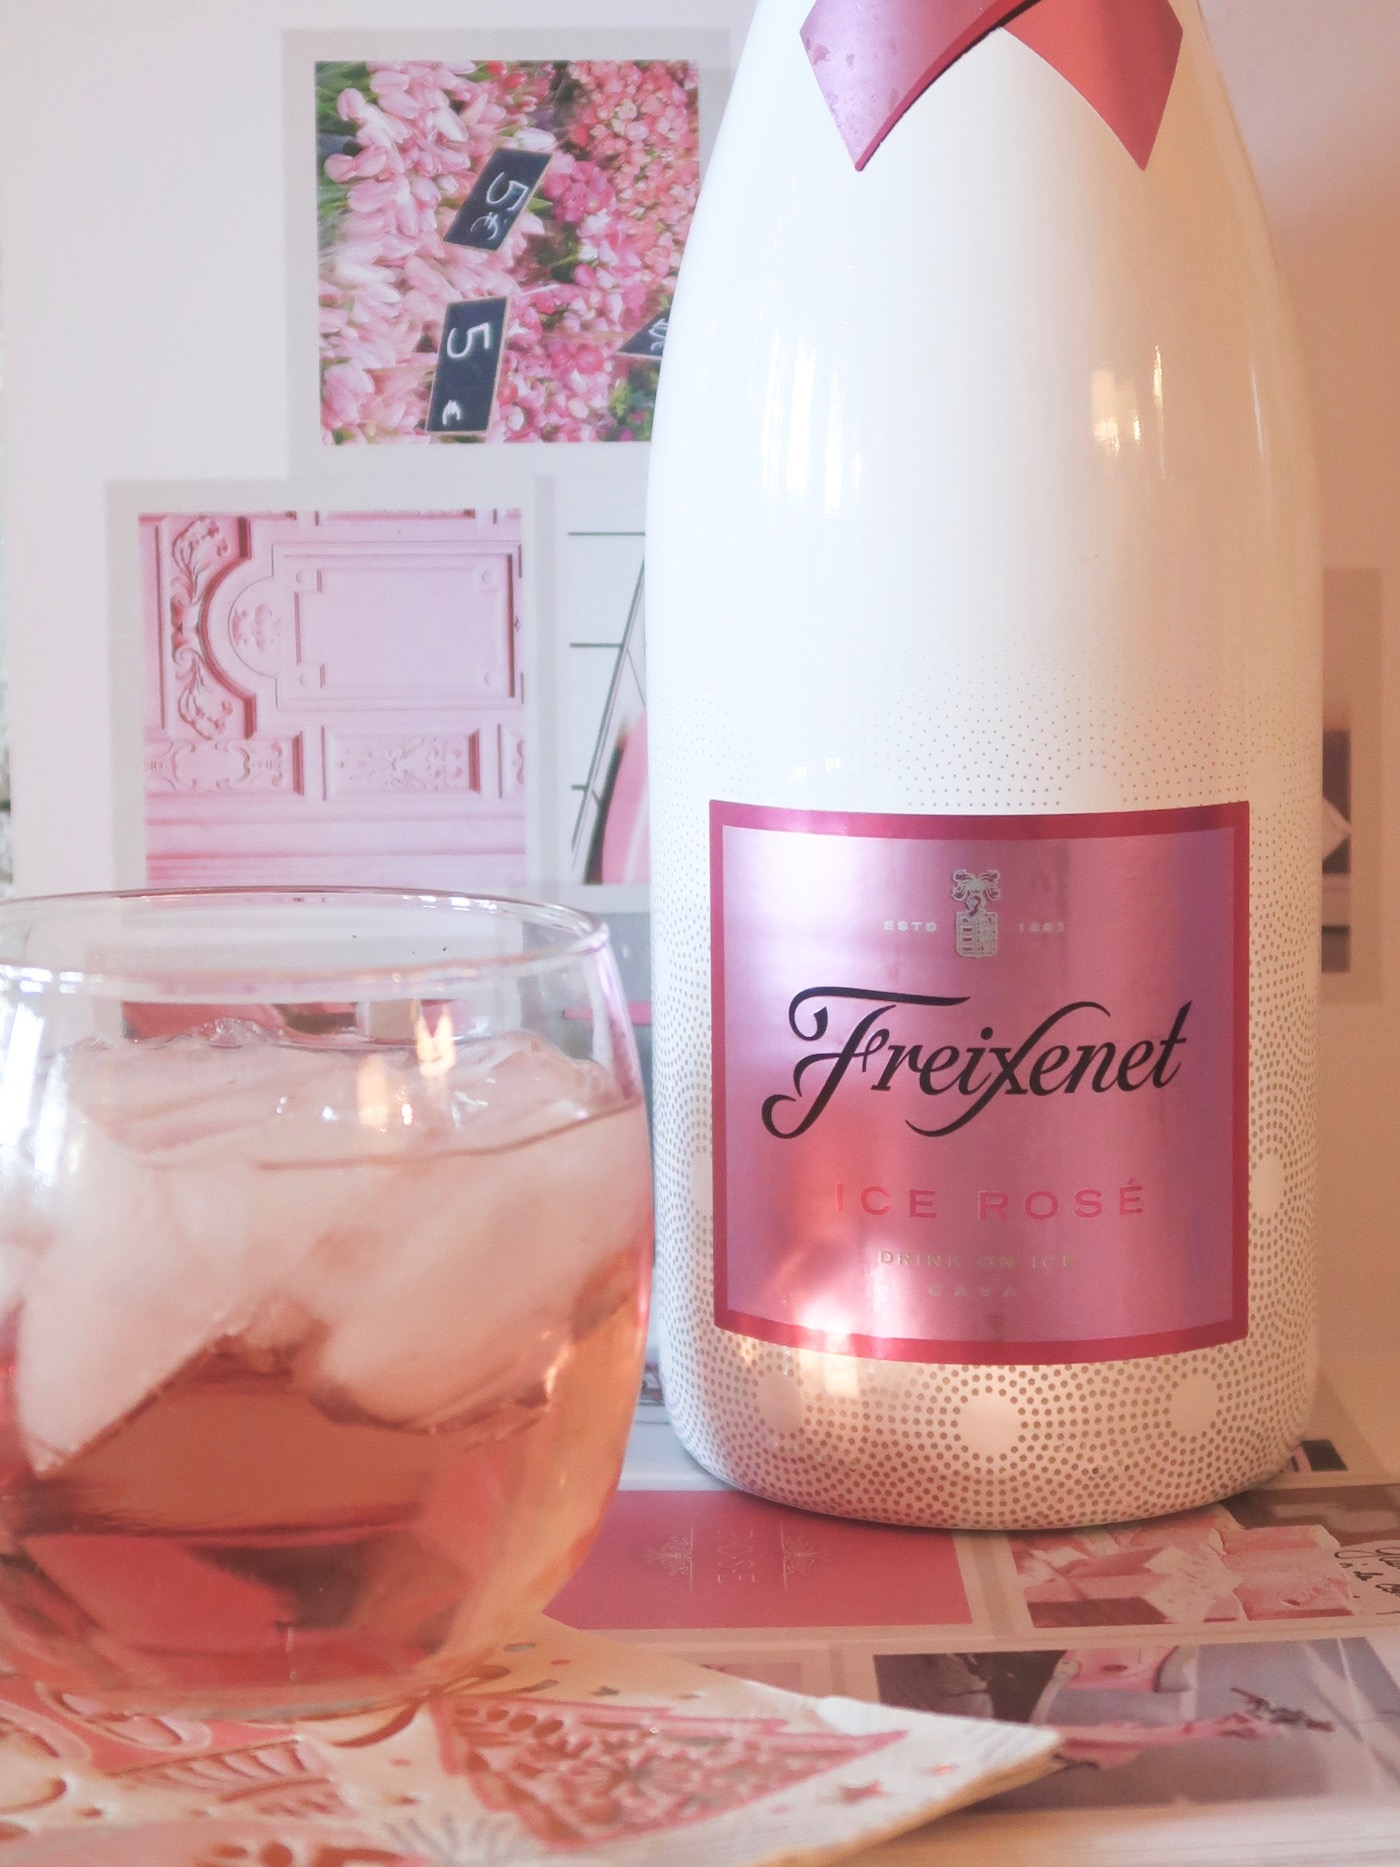 Sparkling Rosé over ice: My favorite new French trend!